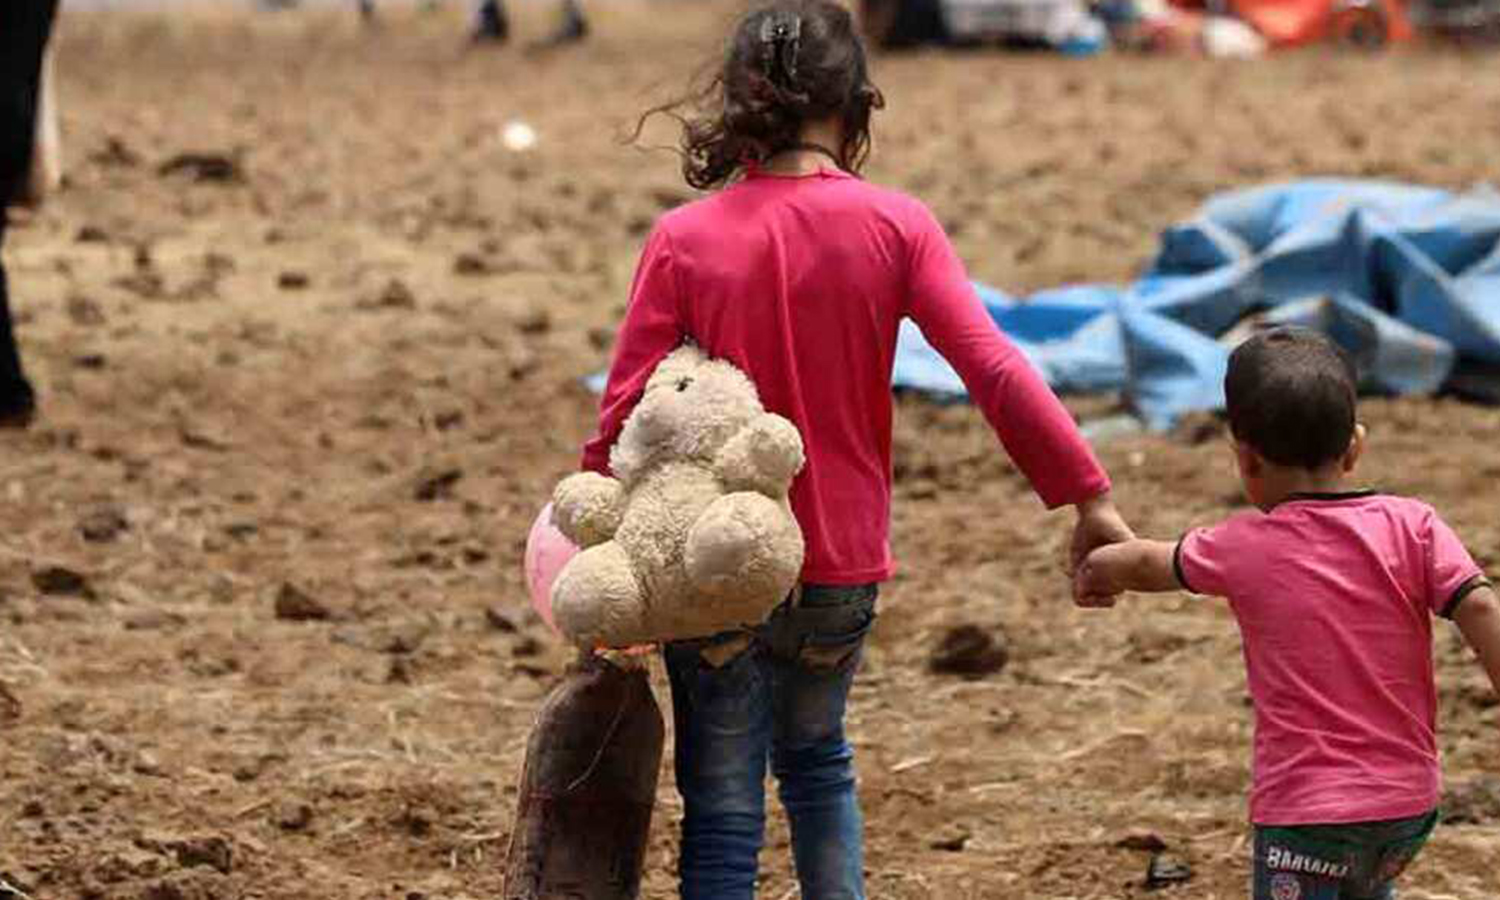 Syrian little girl displaced from Daraa province holding a stuffed toy near the Occupied Golan, in Quneitra province – 29 June 2018 (Reuters)